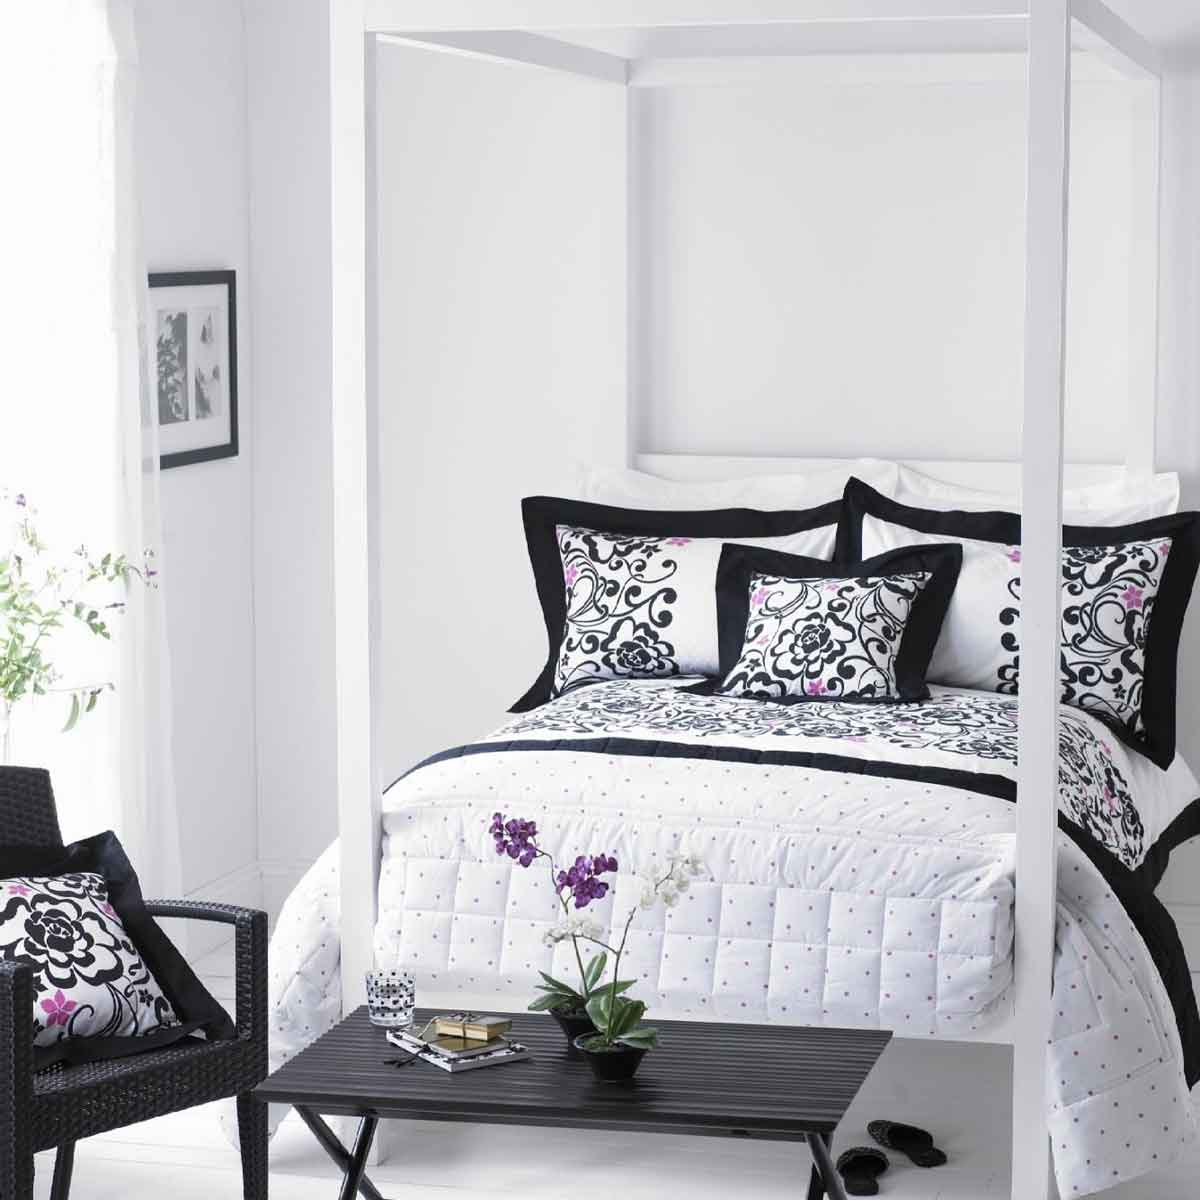 black and gray bedroom design photo - 8